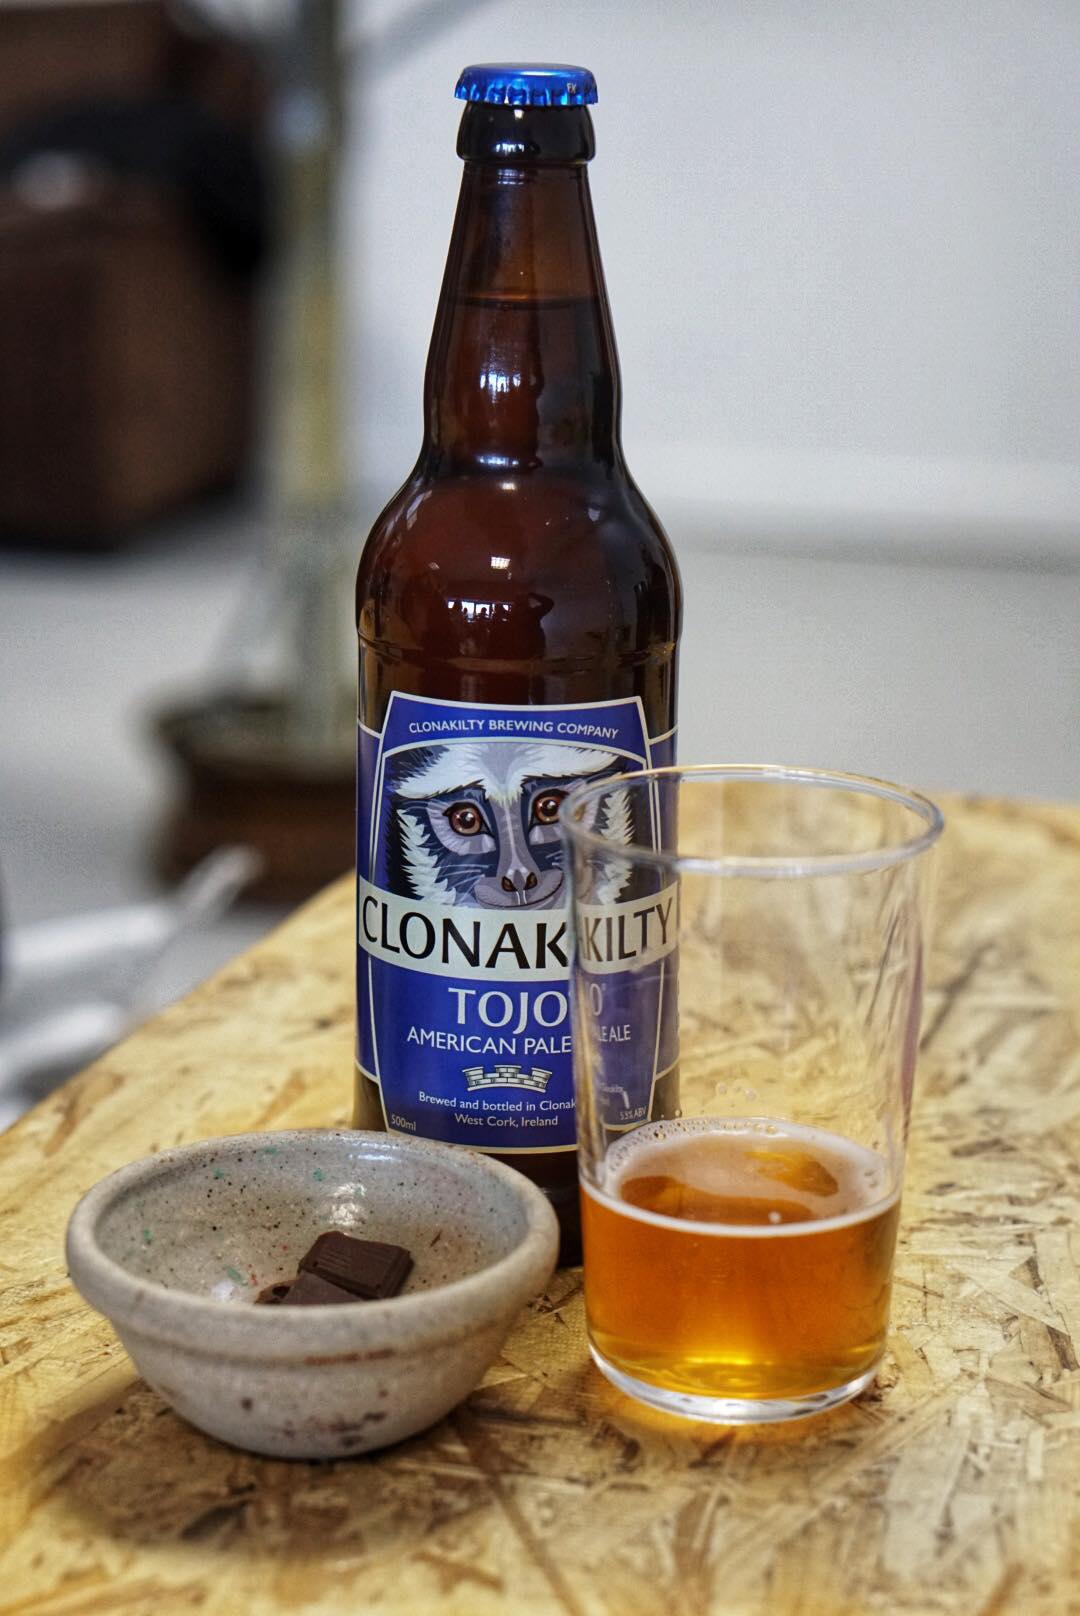 Local beer and chocolate, Clonakilty